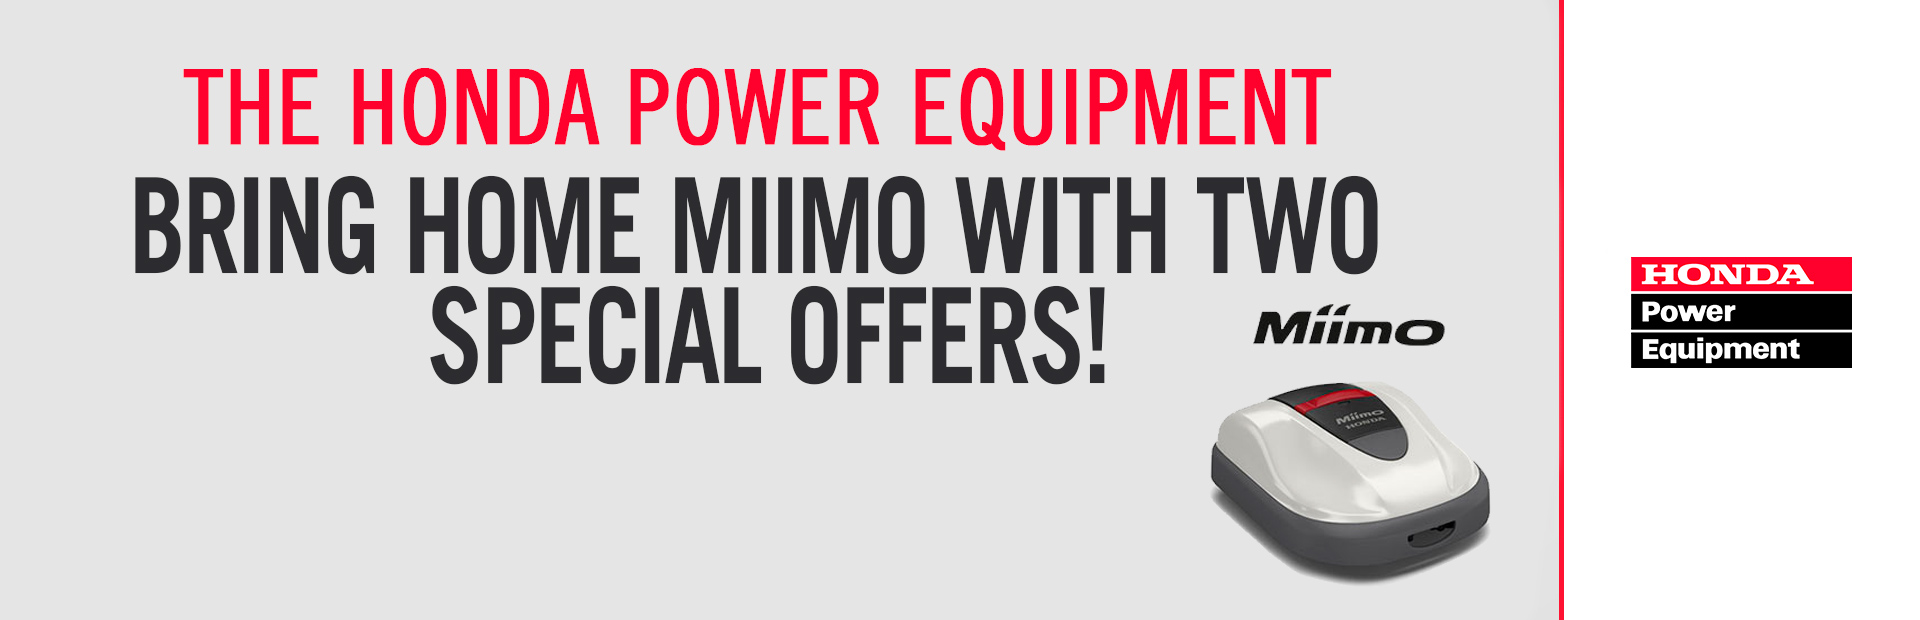 Honda Power Equipment: Bring home Miimo with two special offers!